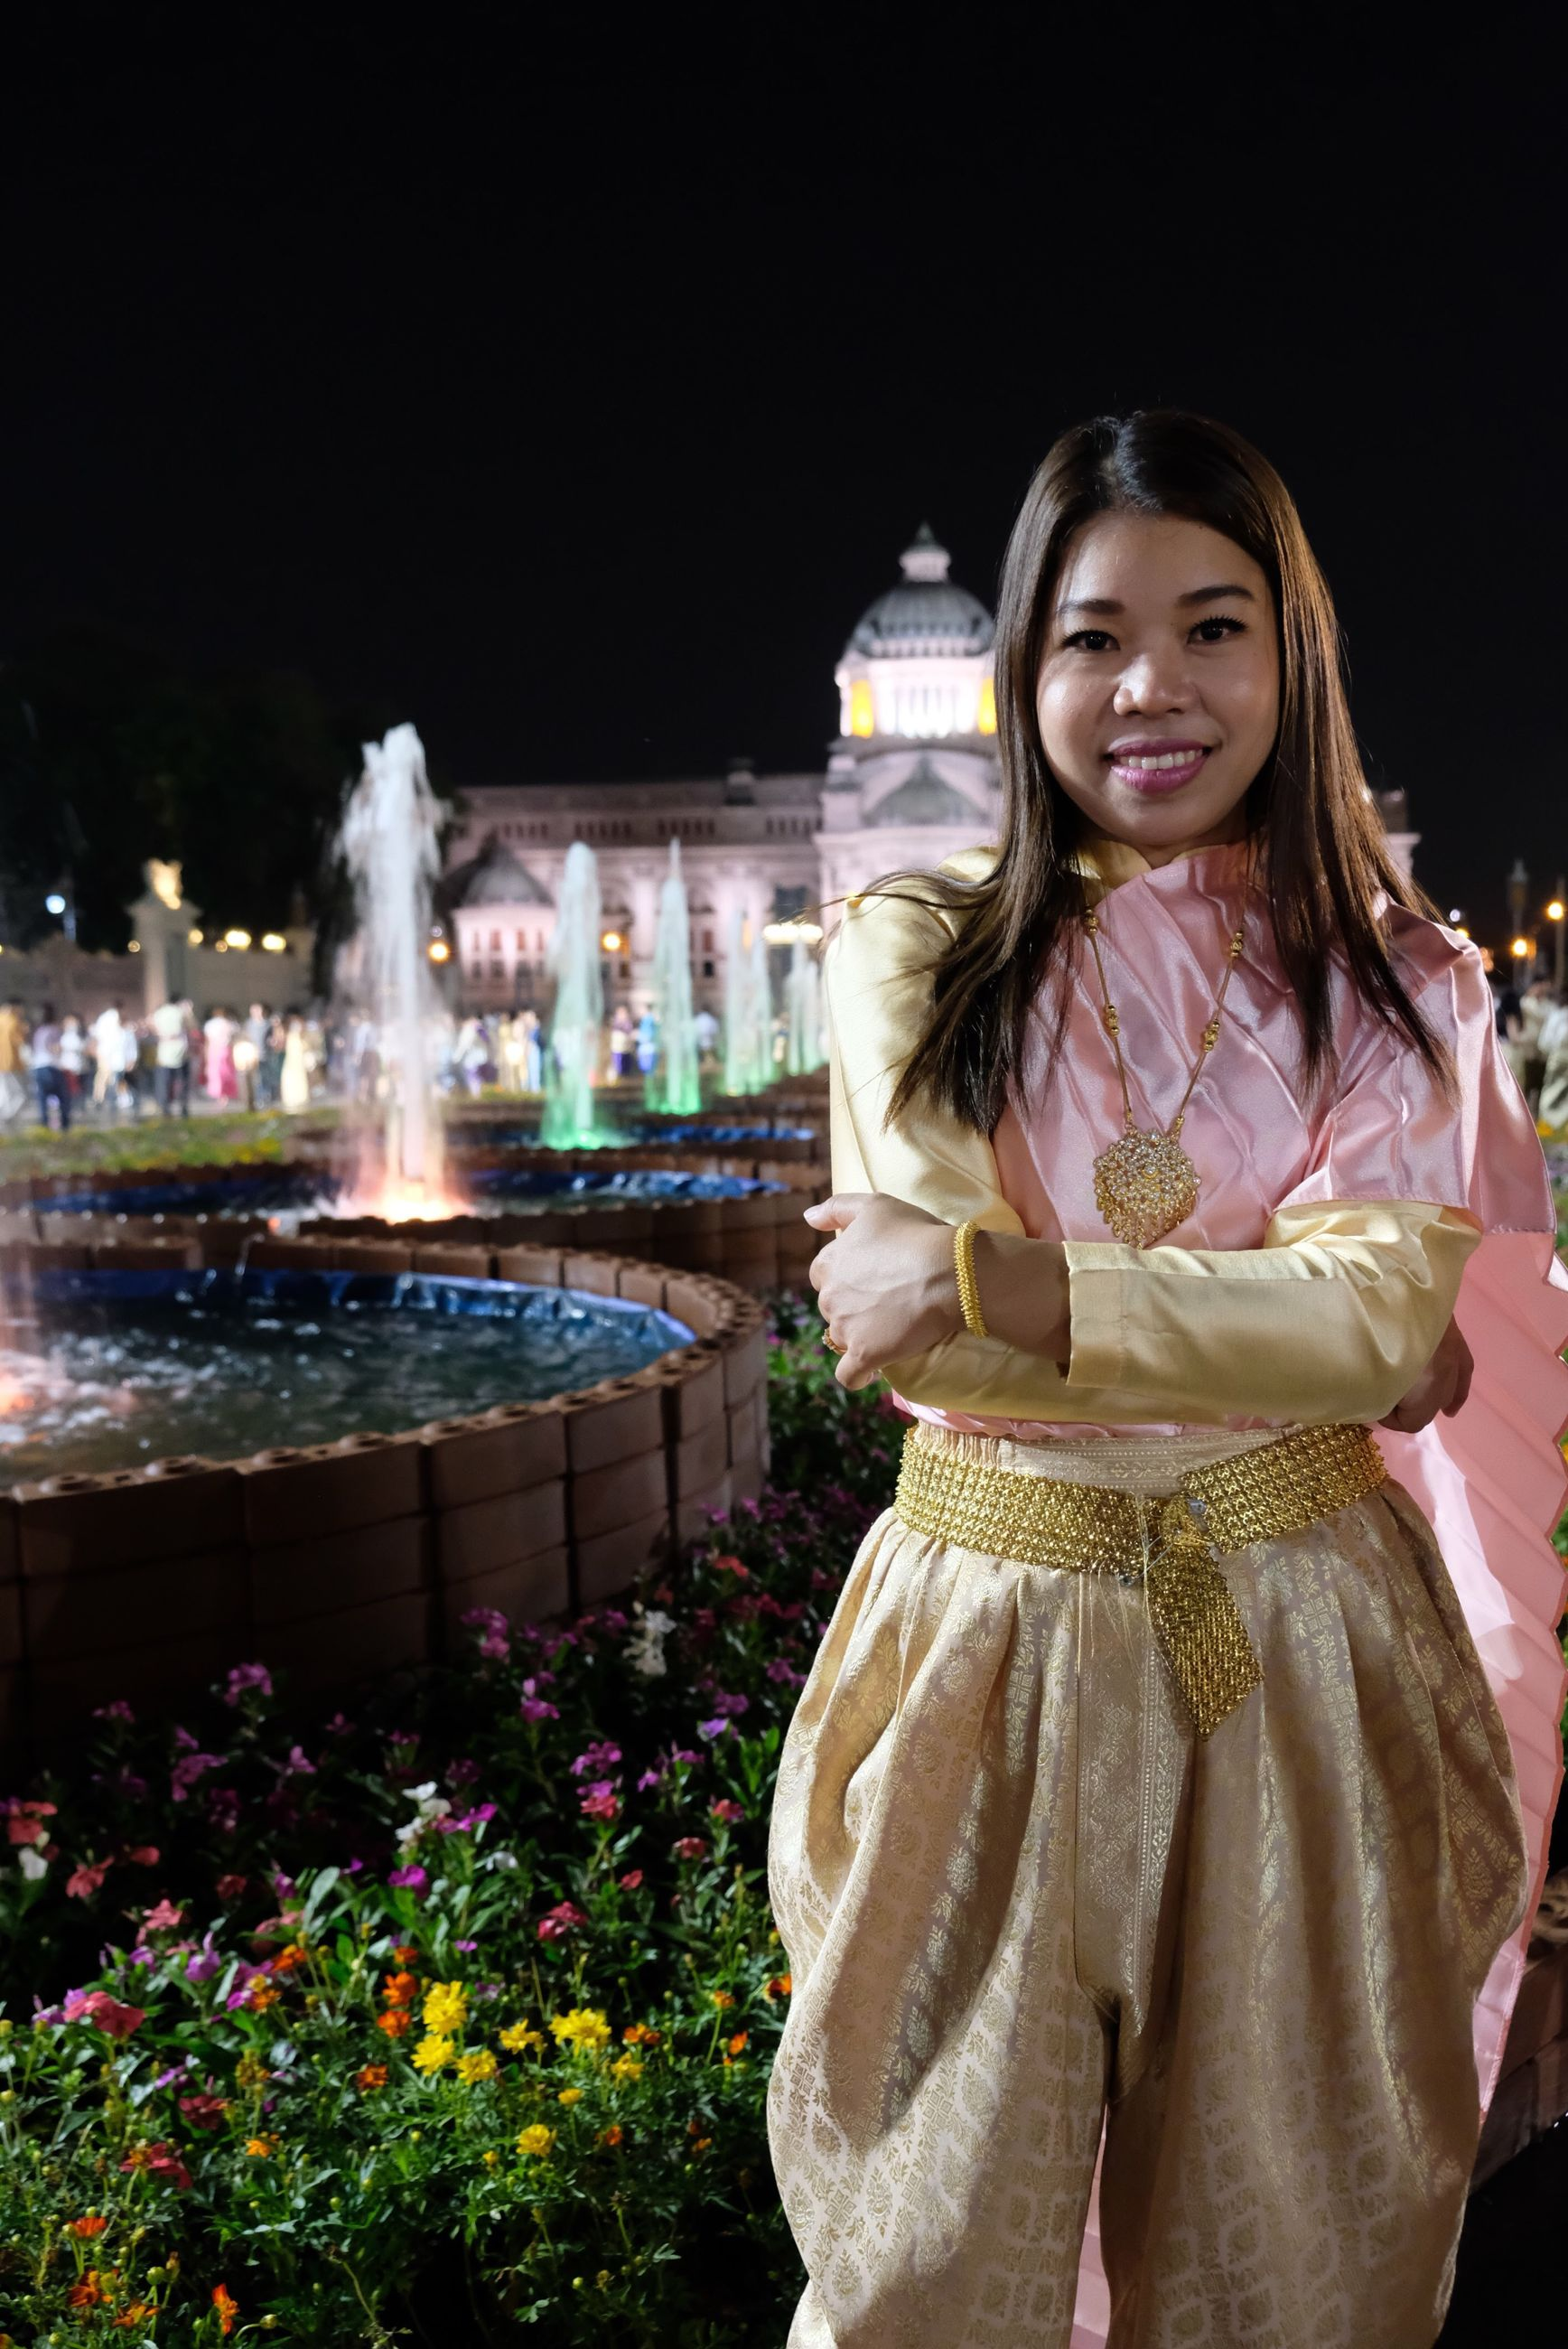 Portrait of woman standing in traditional clothing at park during night